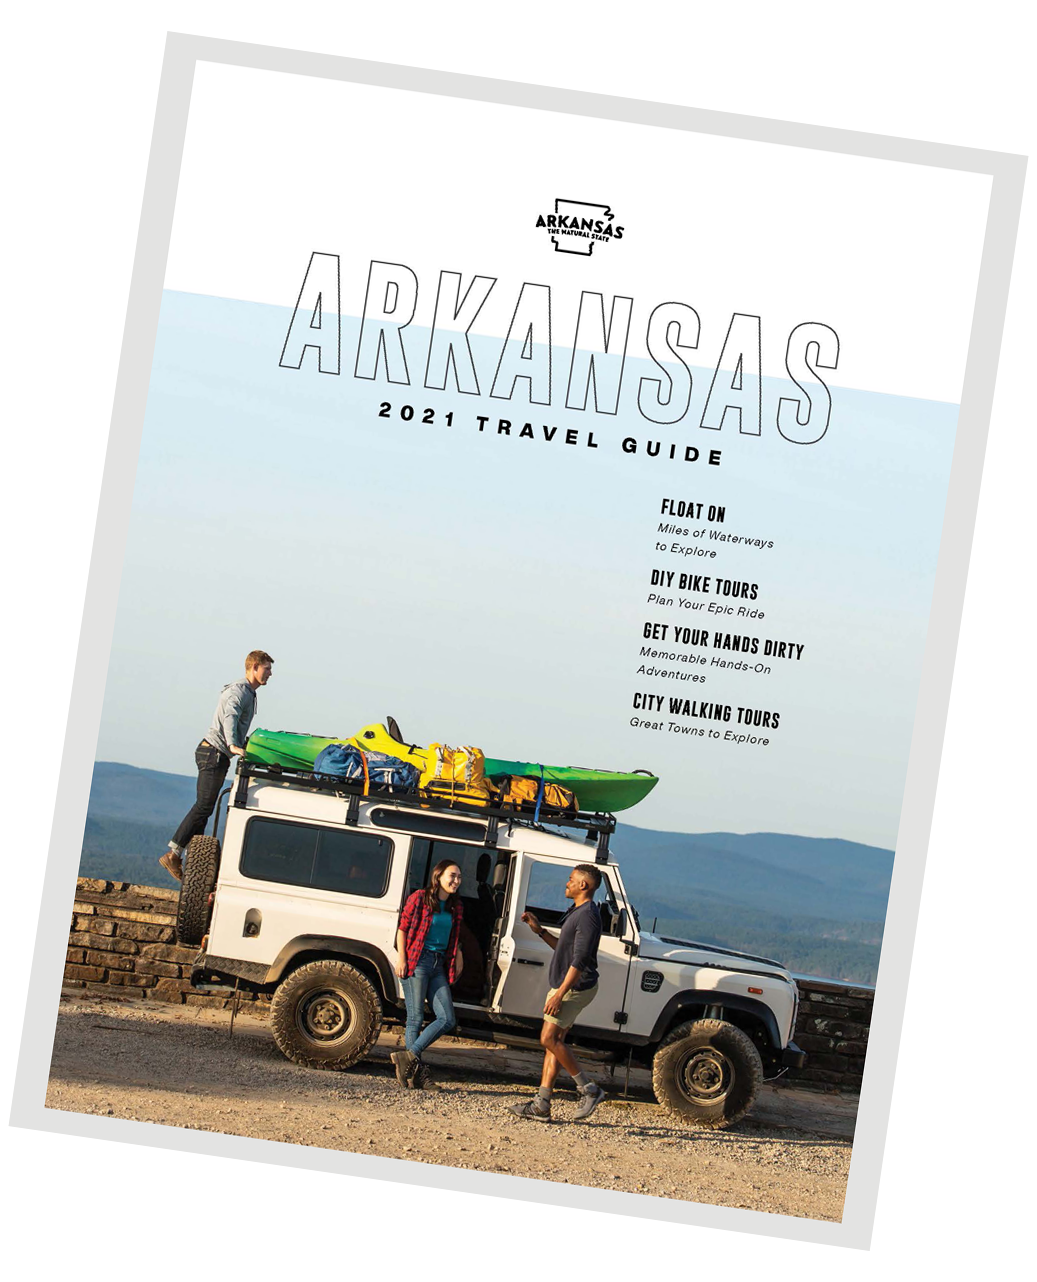 Plan your trip to Arkansas with the 2021 Travel Guide